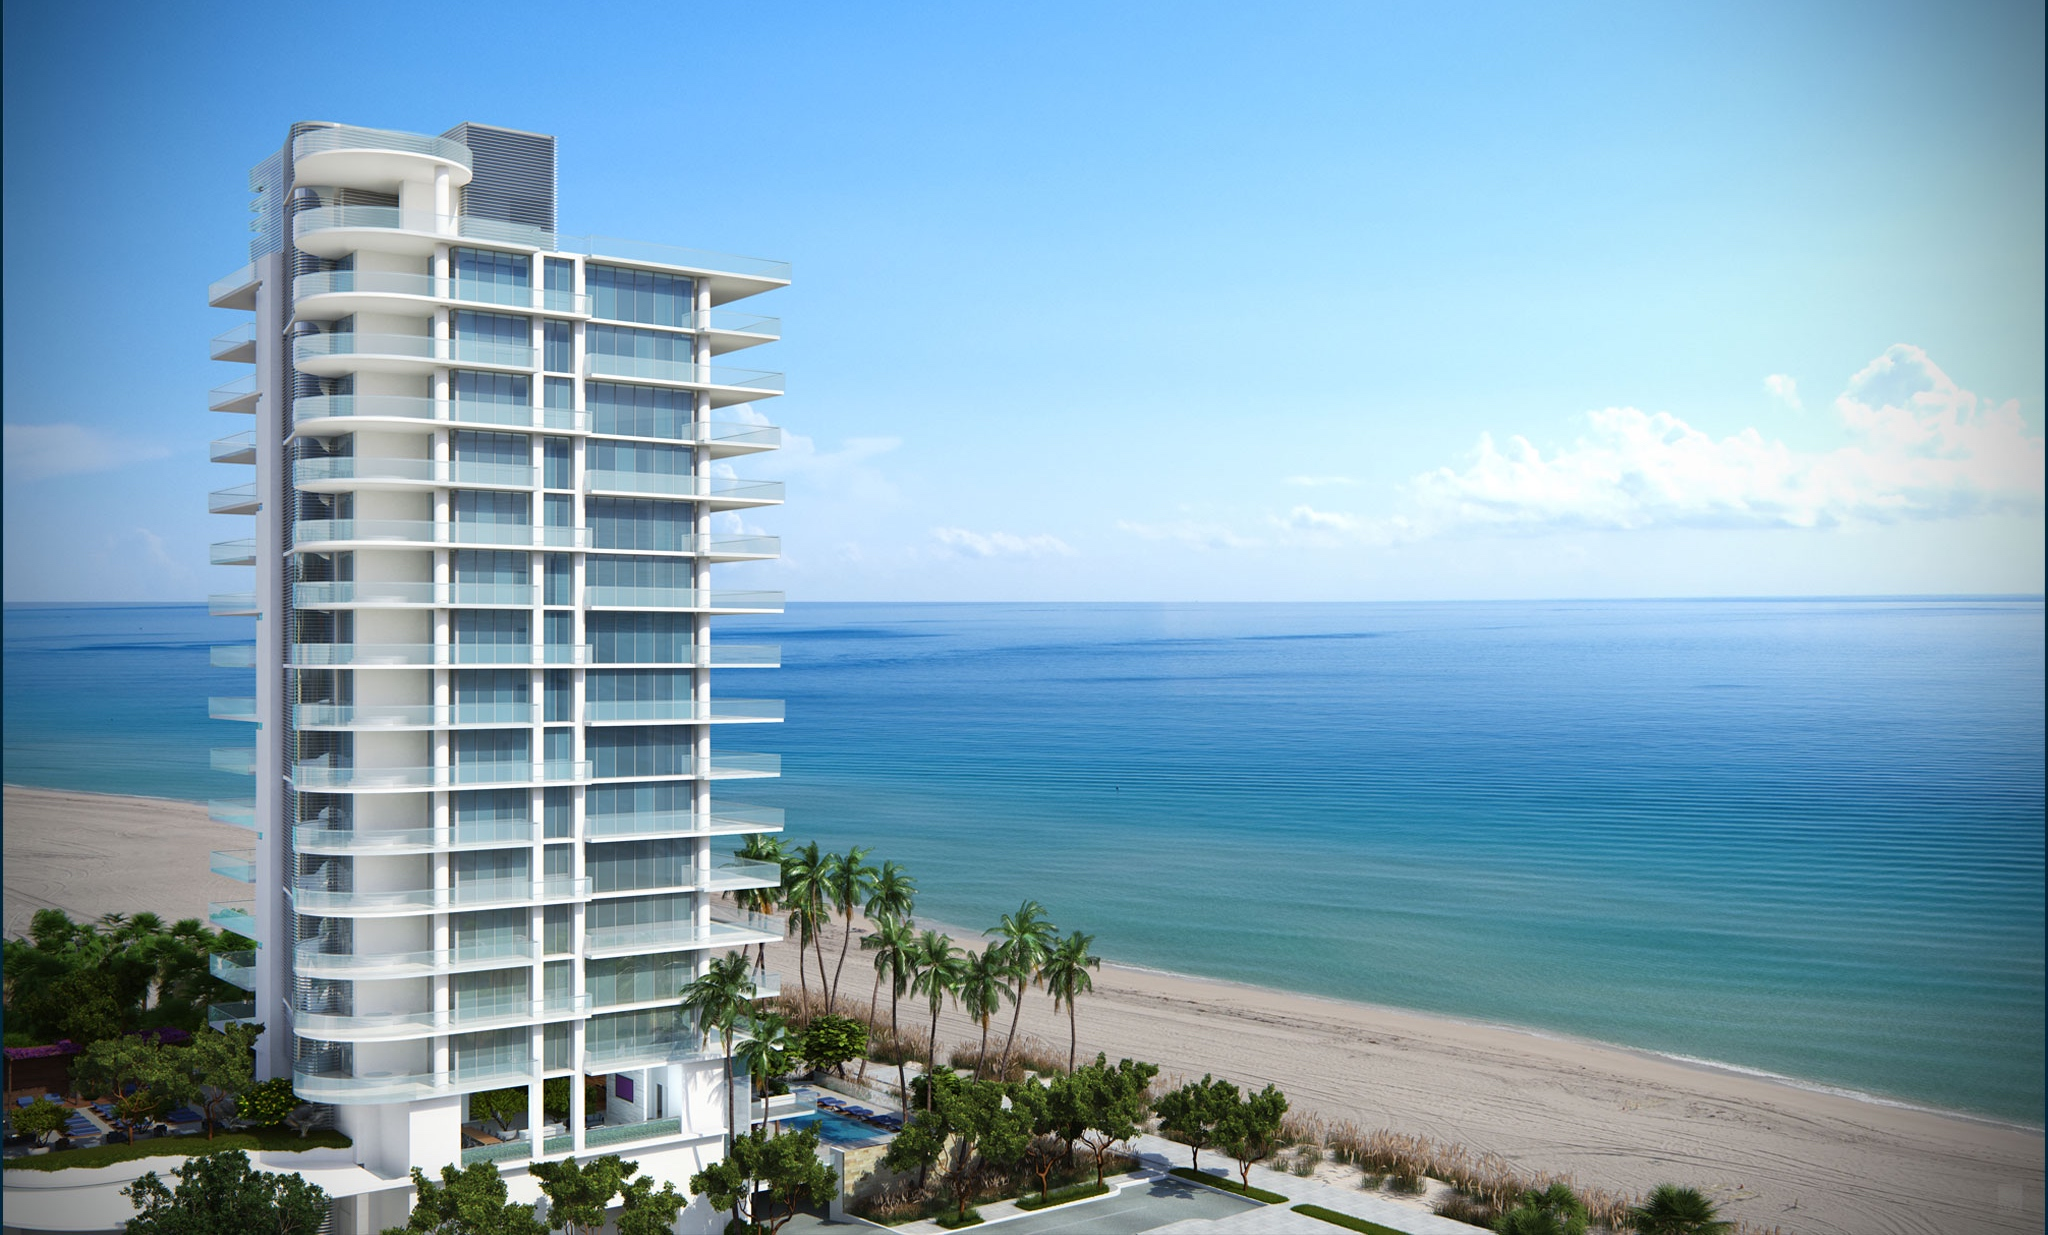 Penthouse at l atelier residences miami beach most for Beach house builders